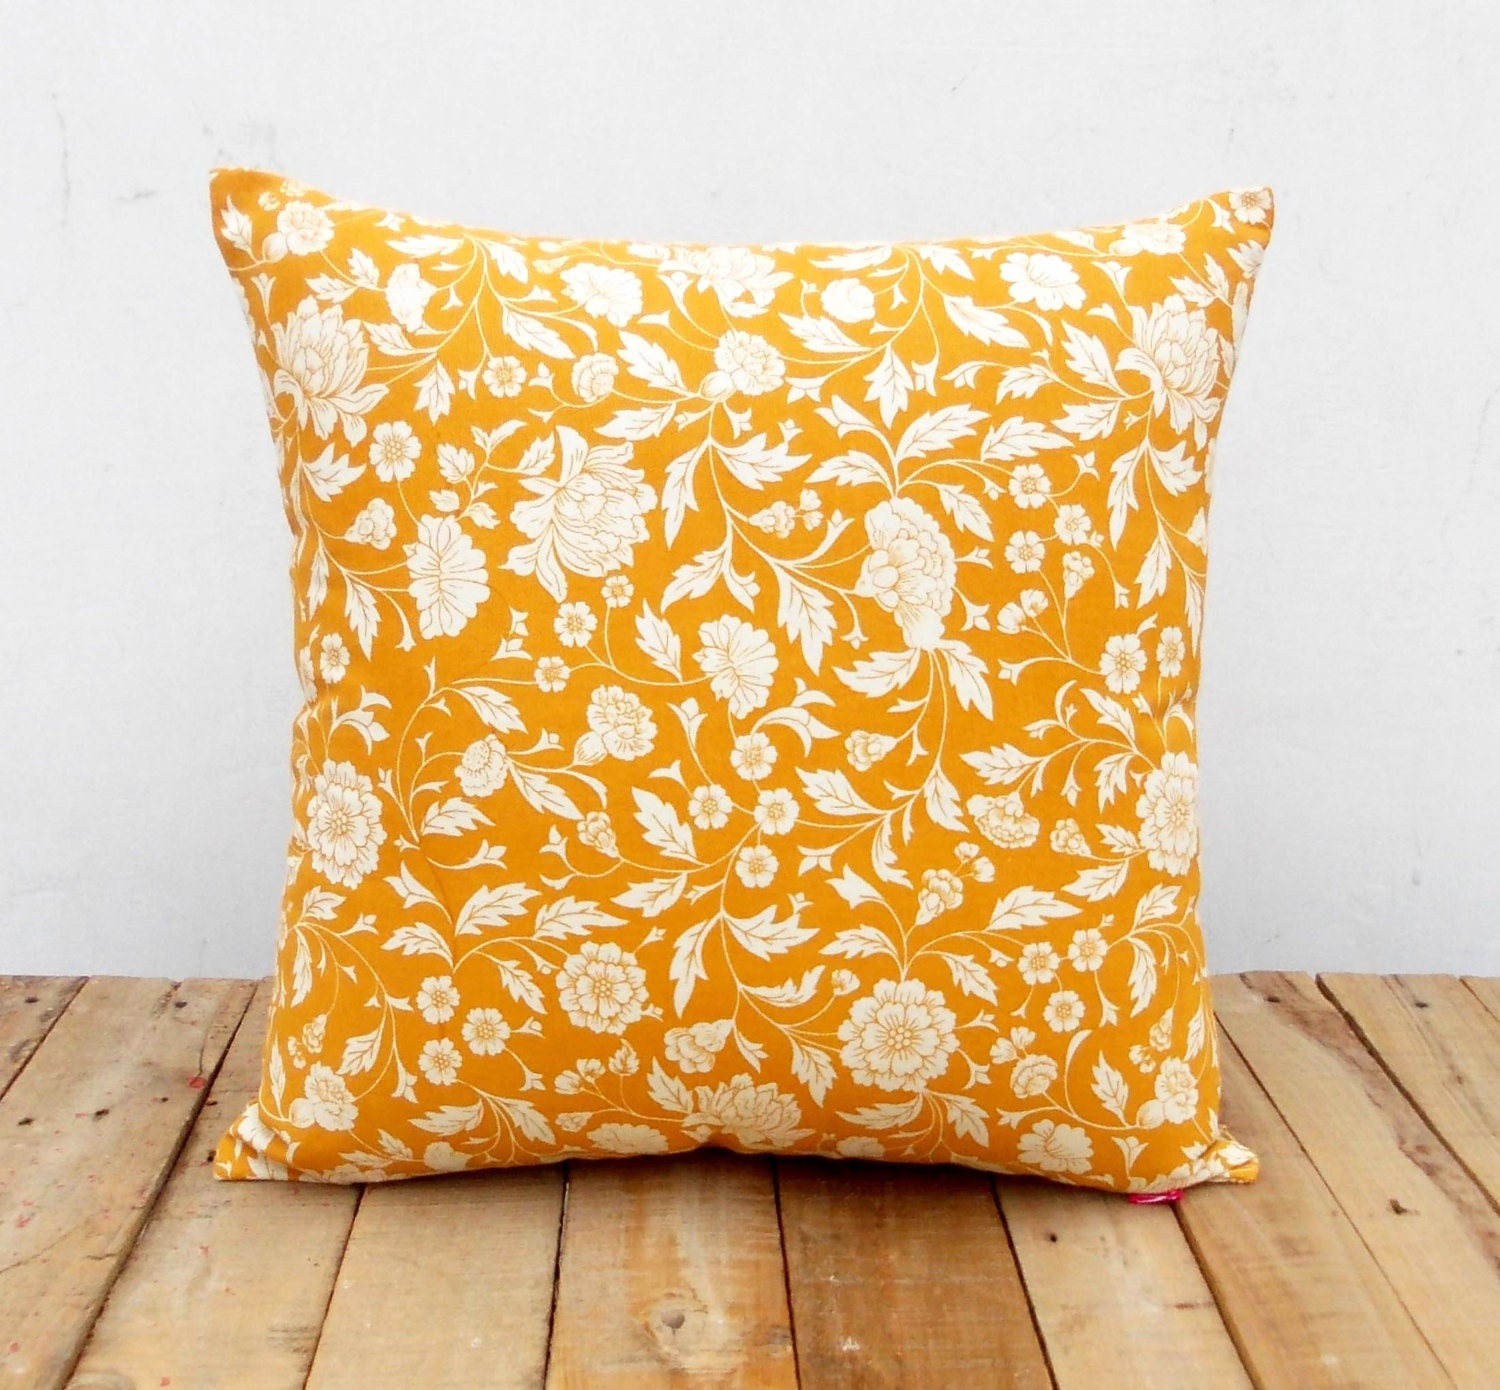 Throw Pillow Covers Yellow : Yellow ochre throw pillow cover Kalamkari print Indian